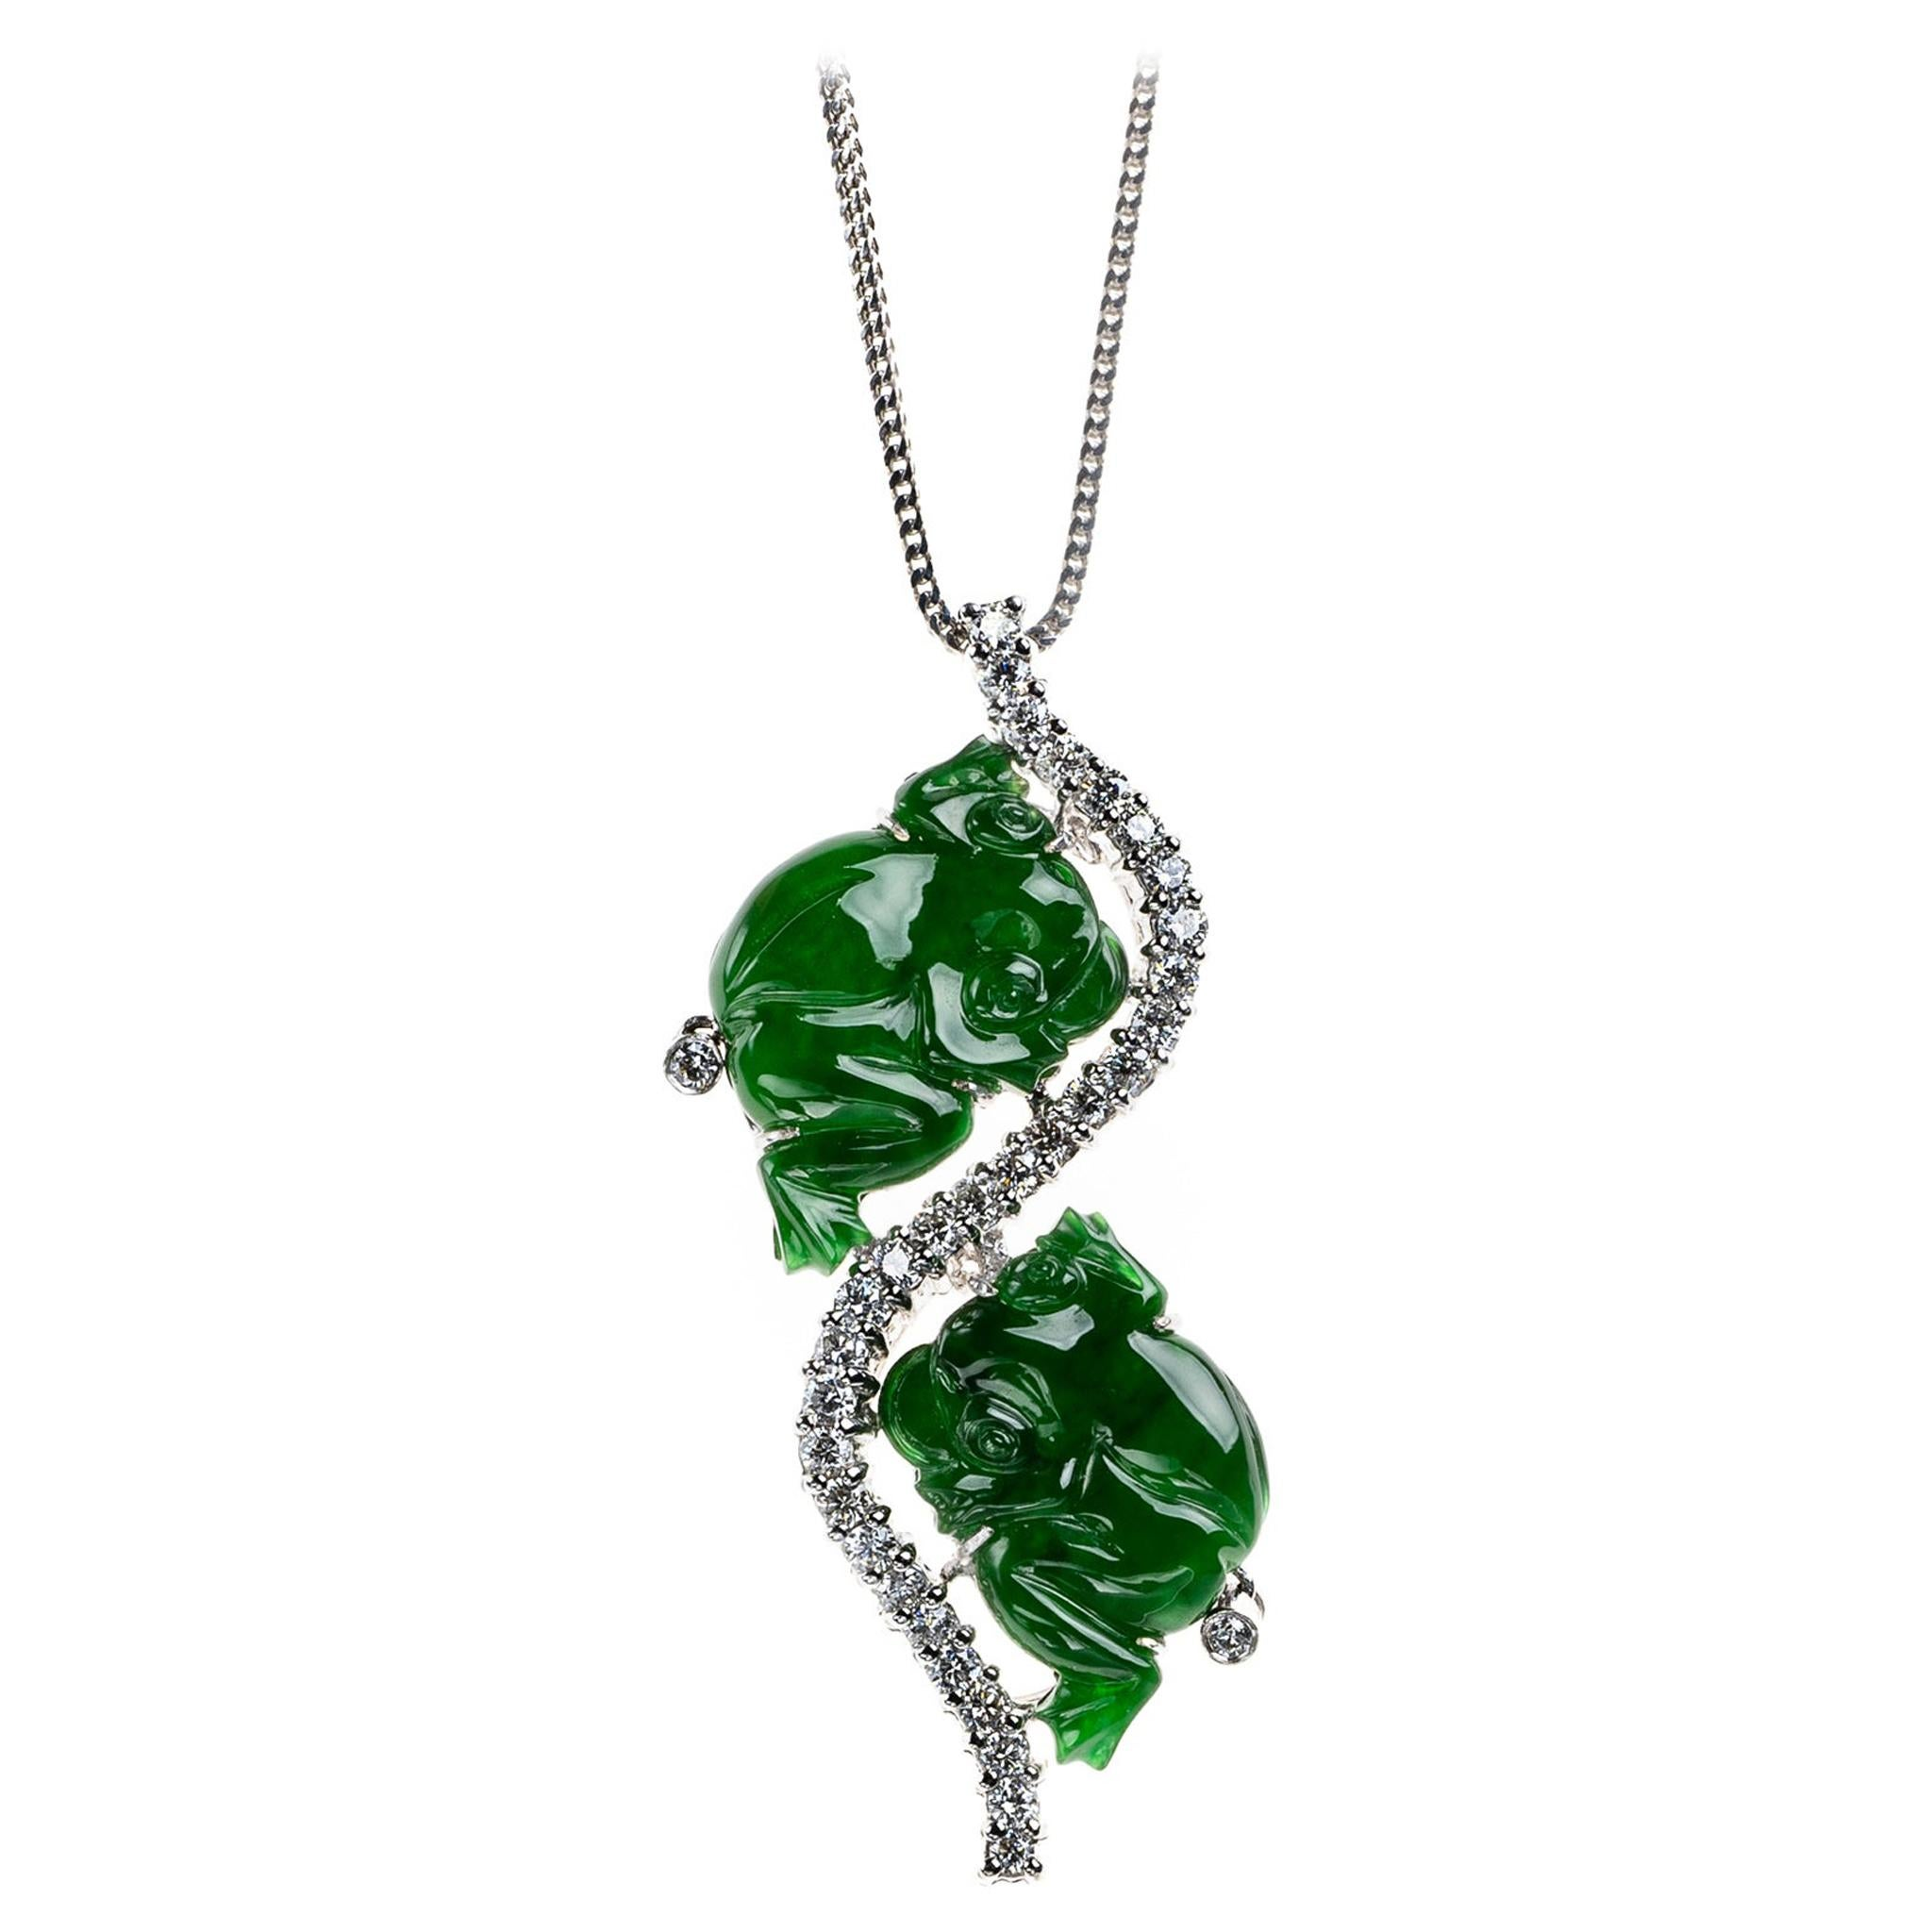 Imperial Green Jadeite Jade Frog and Diamond Pendant, GIA Certified Untreated